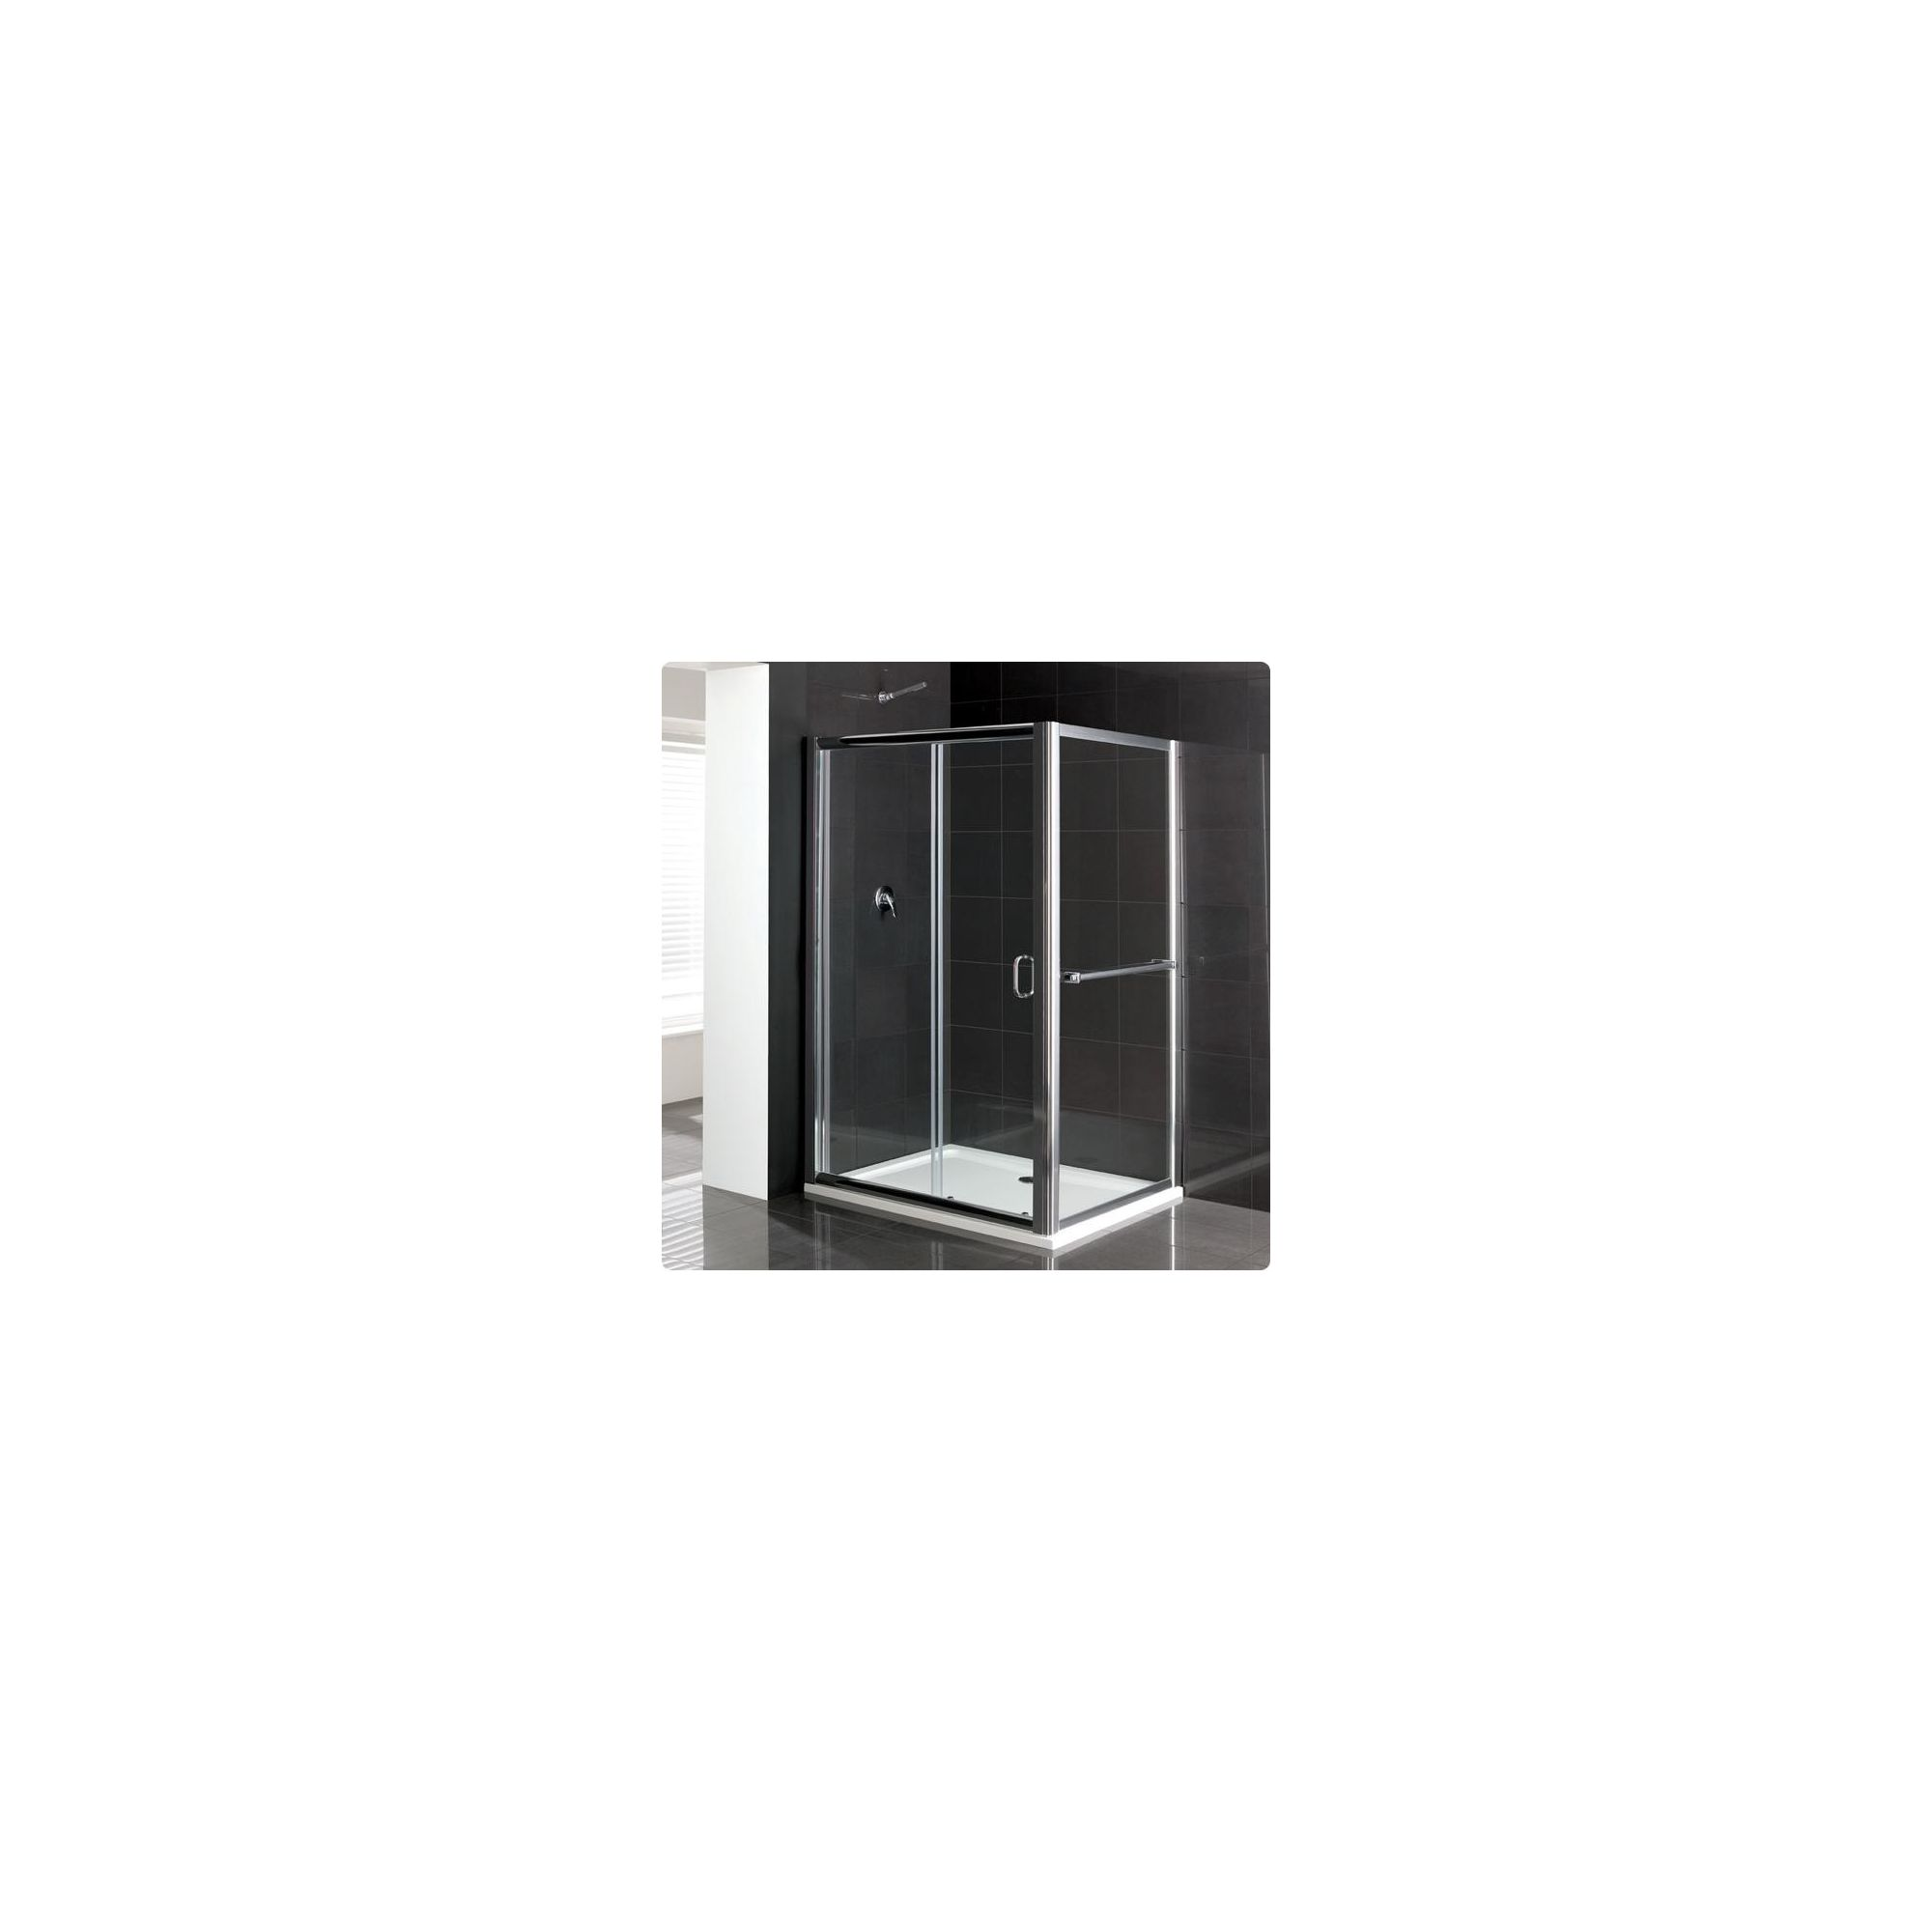 Duchy Elite Silver Sliding Door Shower Enclosure with Towel Rail, 1700mm x 700mm, Standard Tray, 6mm Glass at Tesco Direct